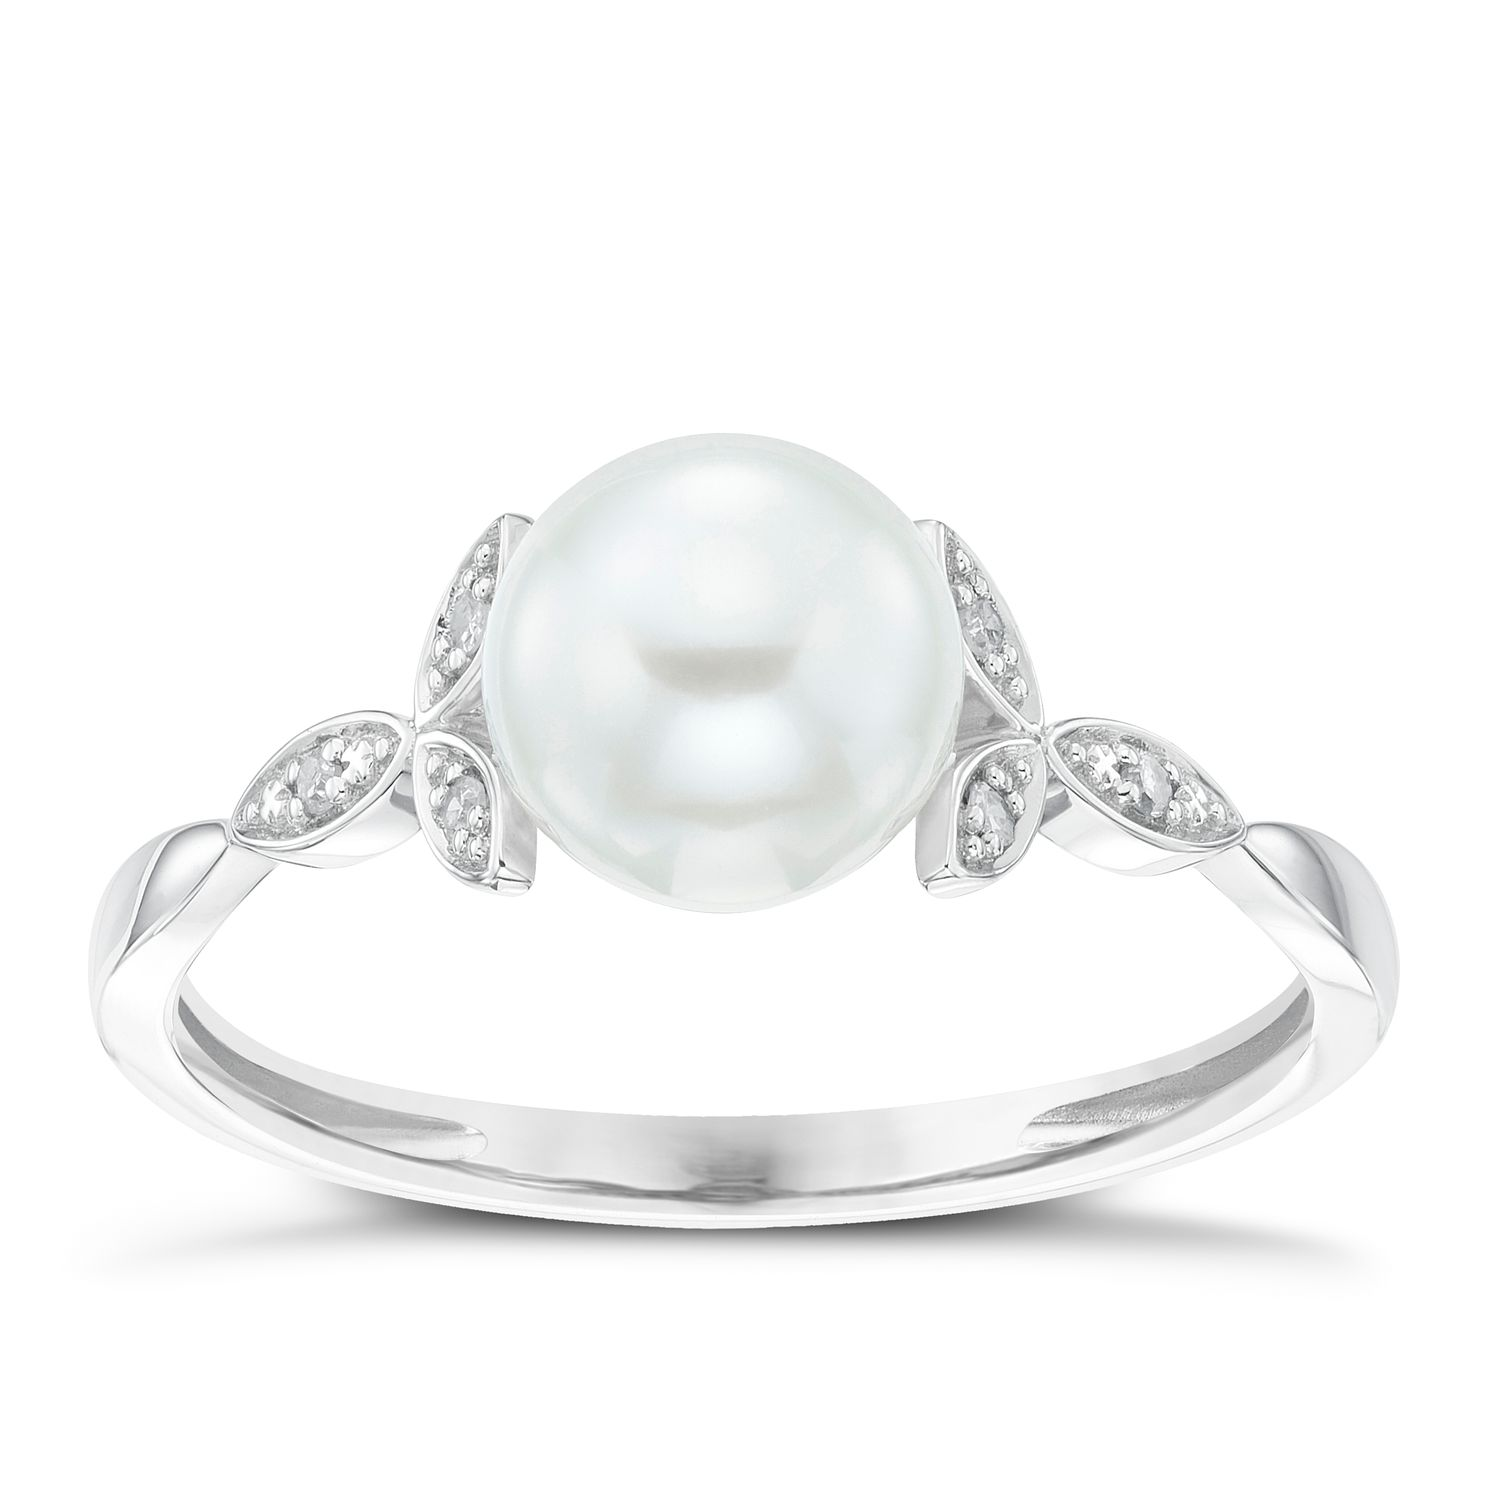 9ct White Gold Cultured Freshwater Pearl Diamond Leaf Ring - Product number 6074545